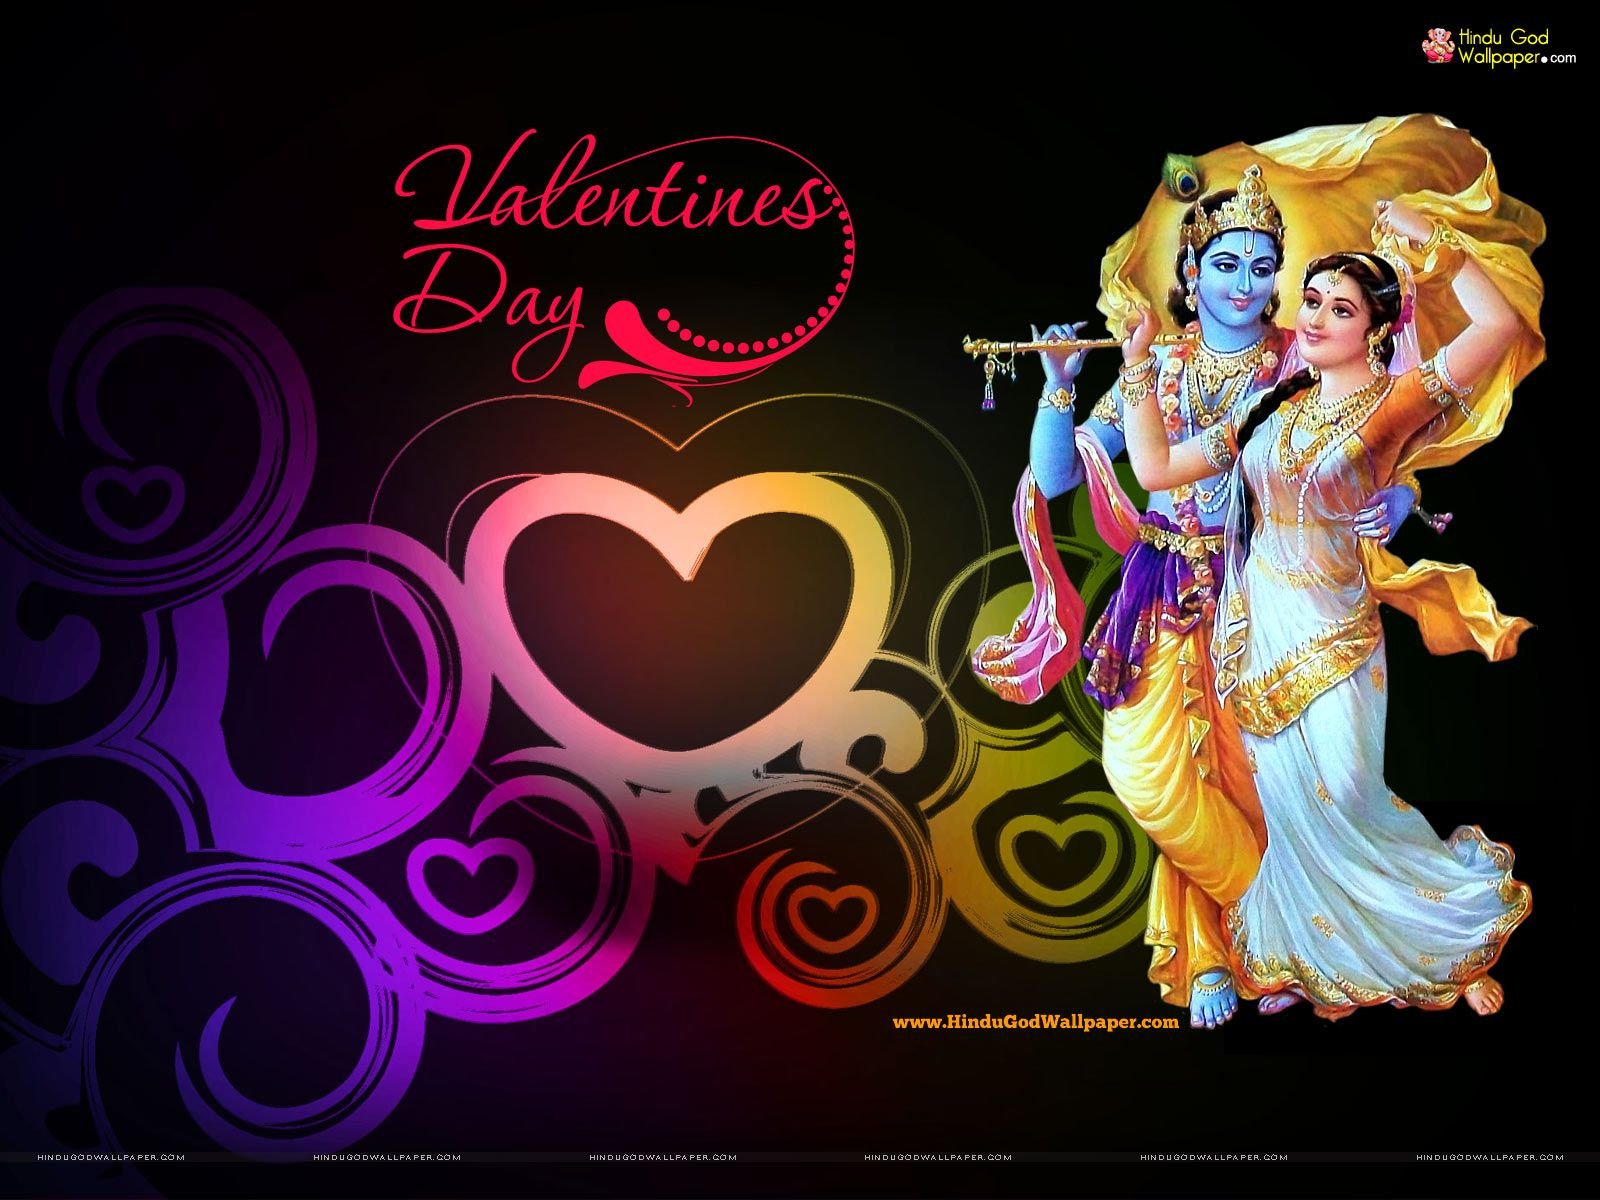 Wallpaper download krishna - Valentine S Day Hd Live Wallpapers Free Download